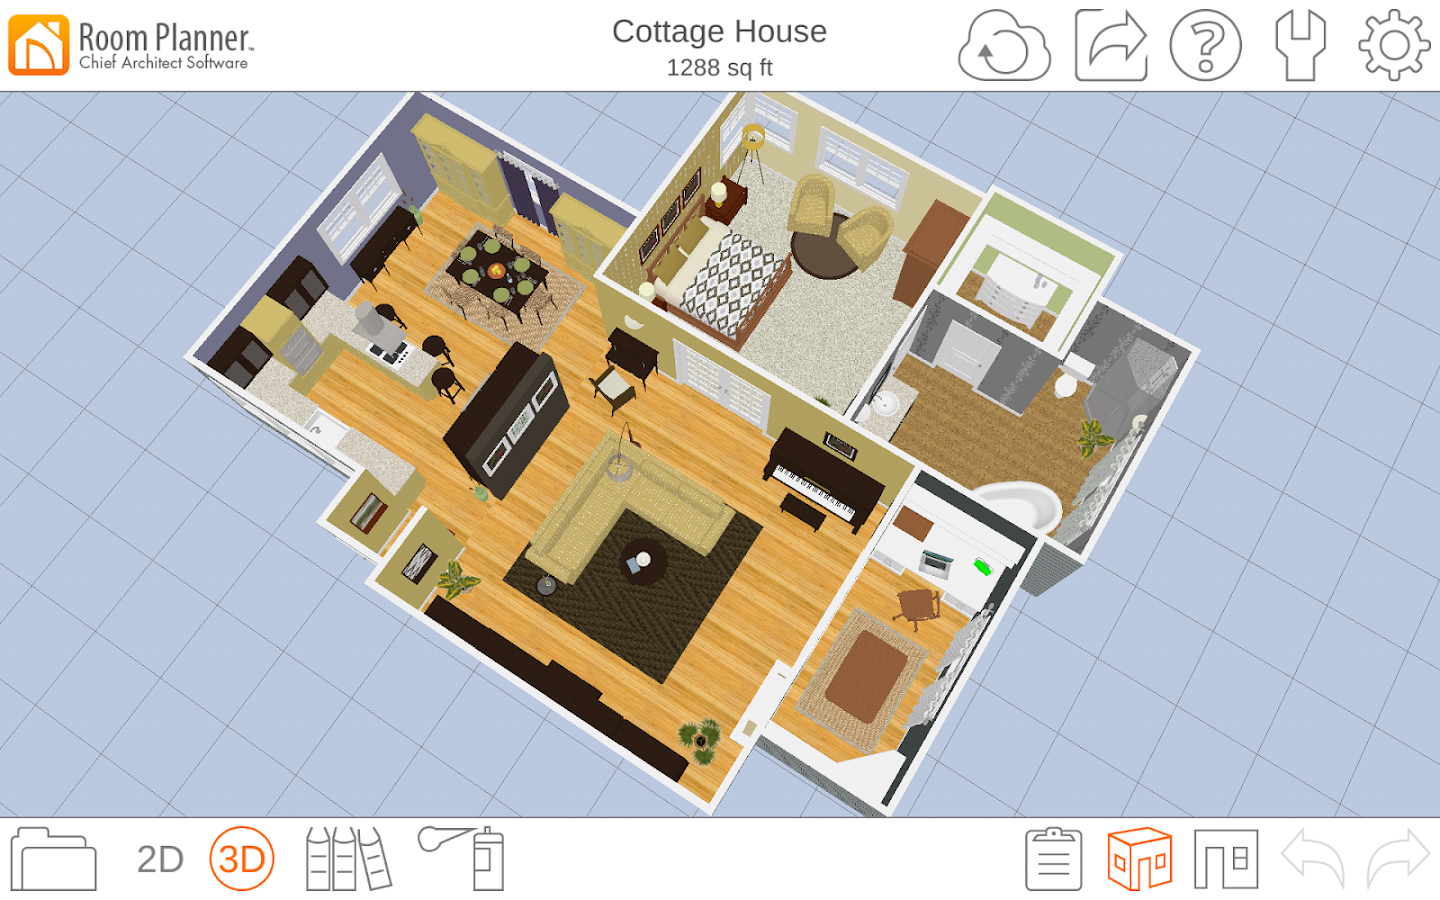 Room planner home design android apps on google play Free room design planner